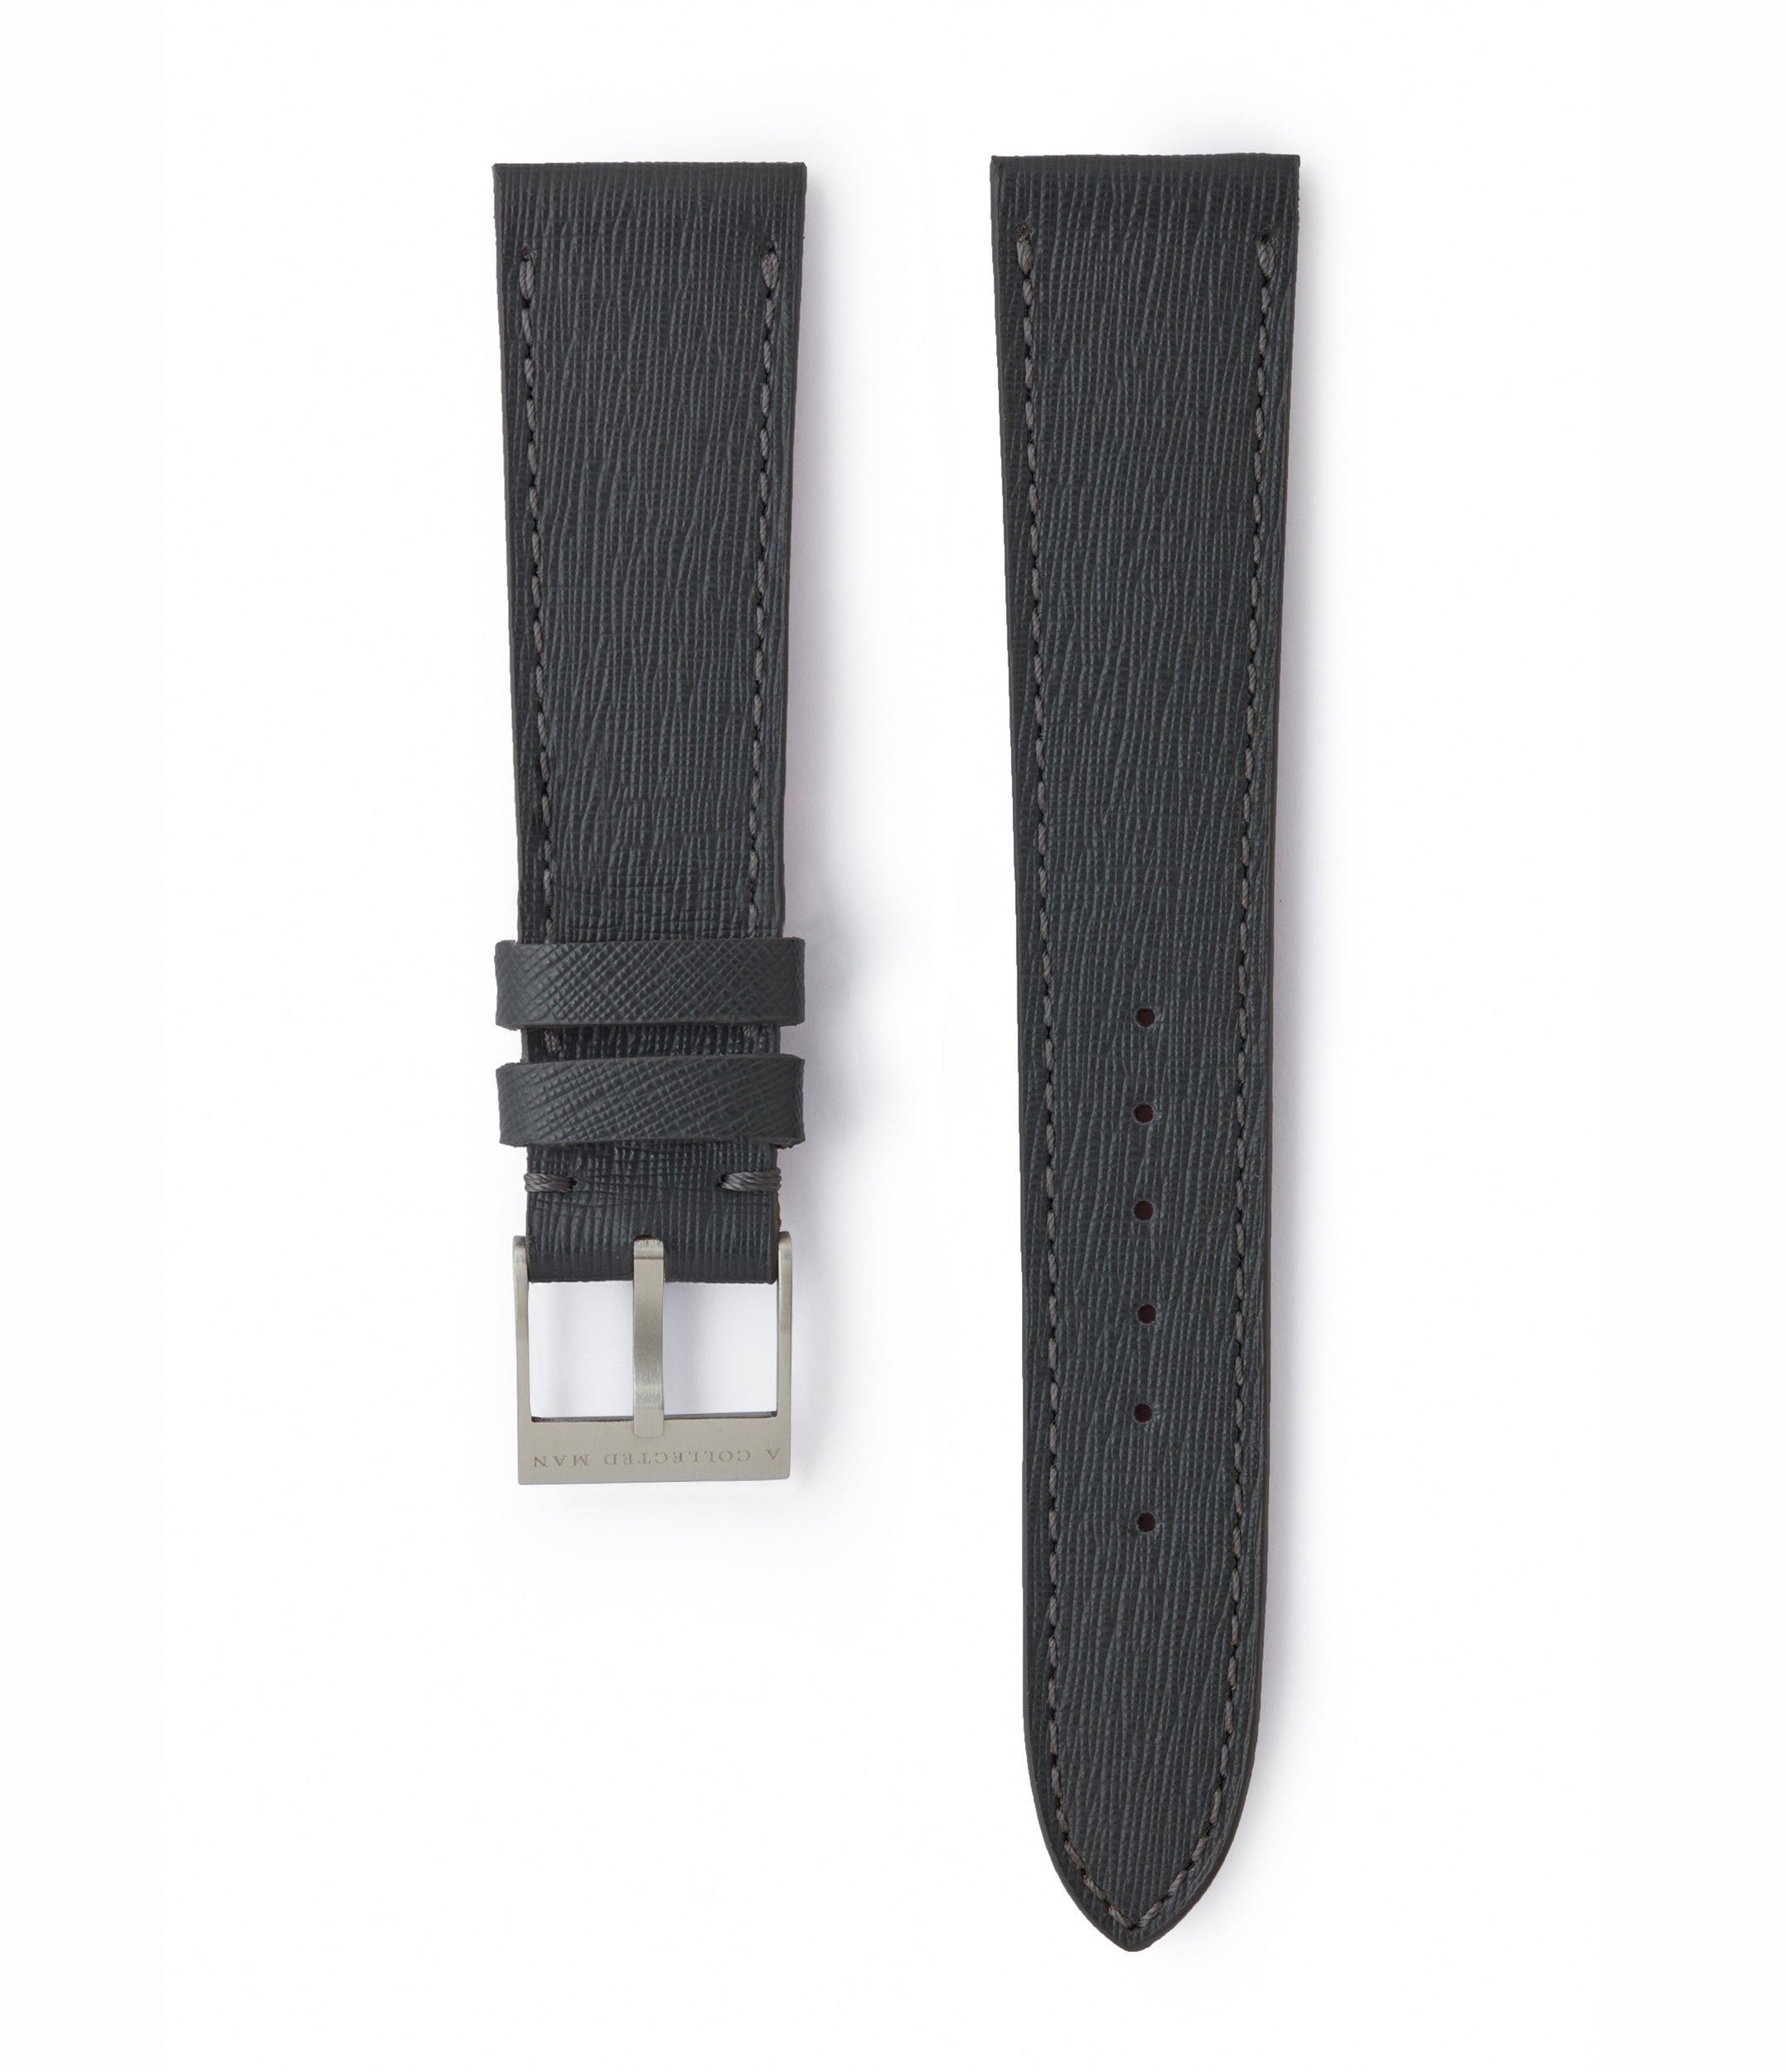 buy grey saffiano leather watch strap 18mm Venice JPM for sale order online at A Collected Man London